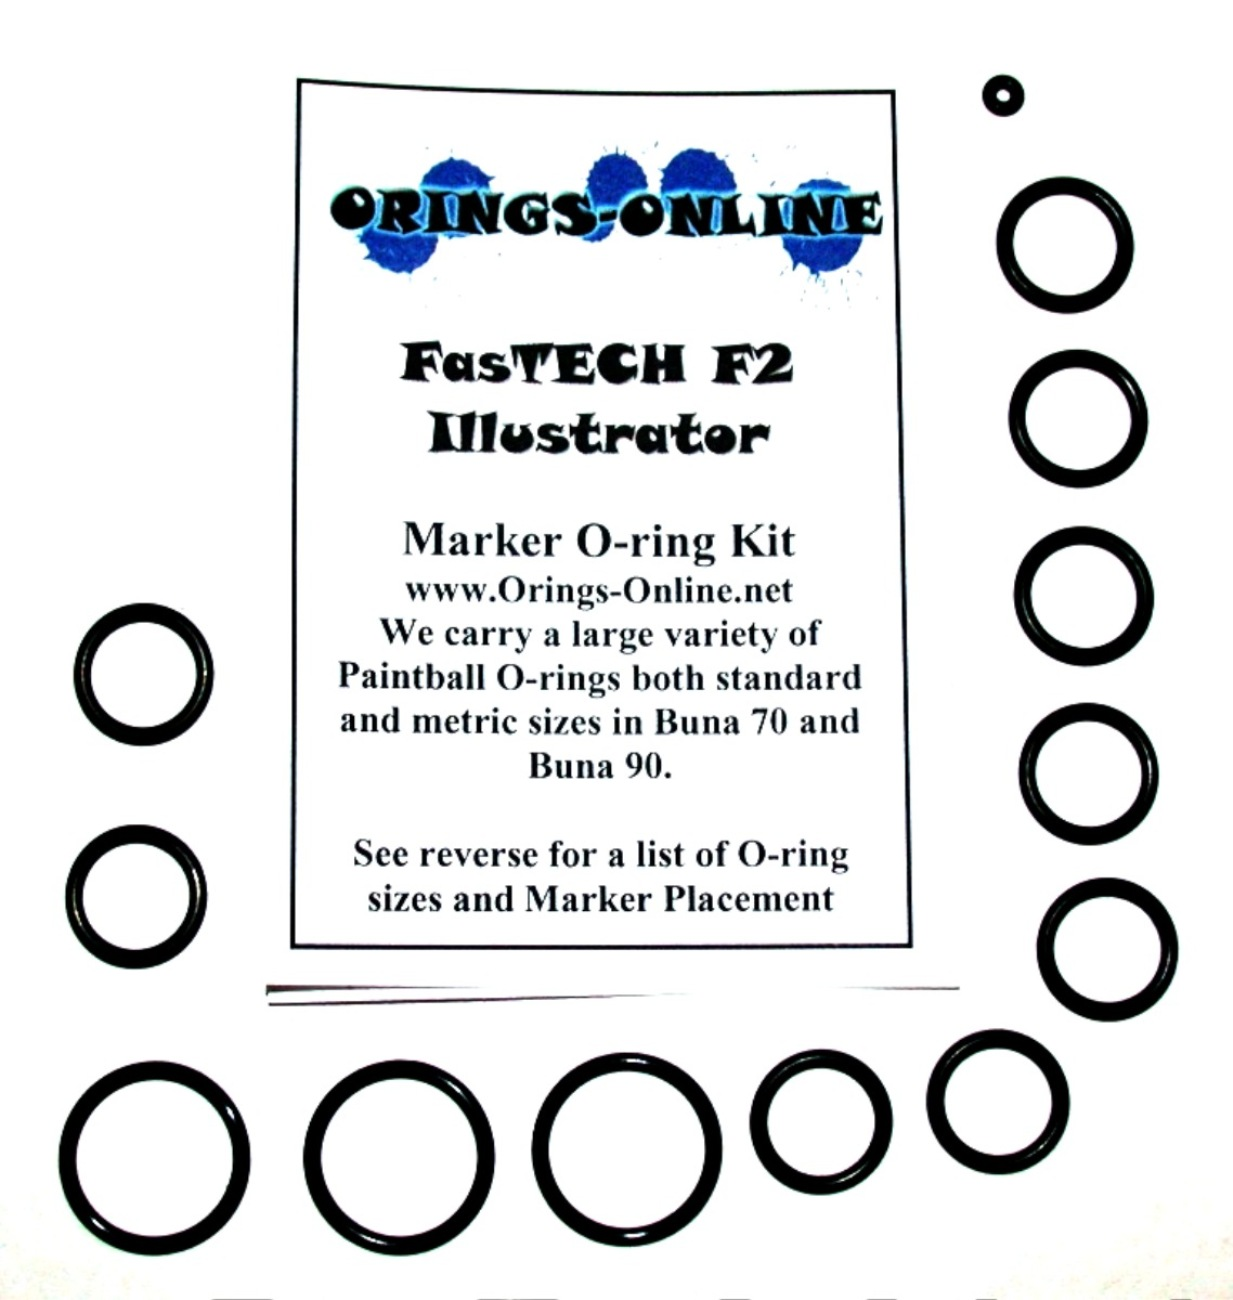 Fastech F2 Illustrator Marker O-ring Kit